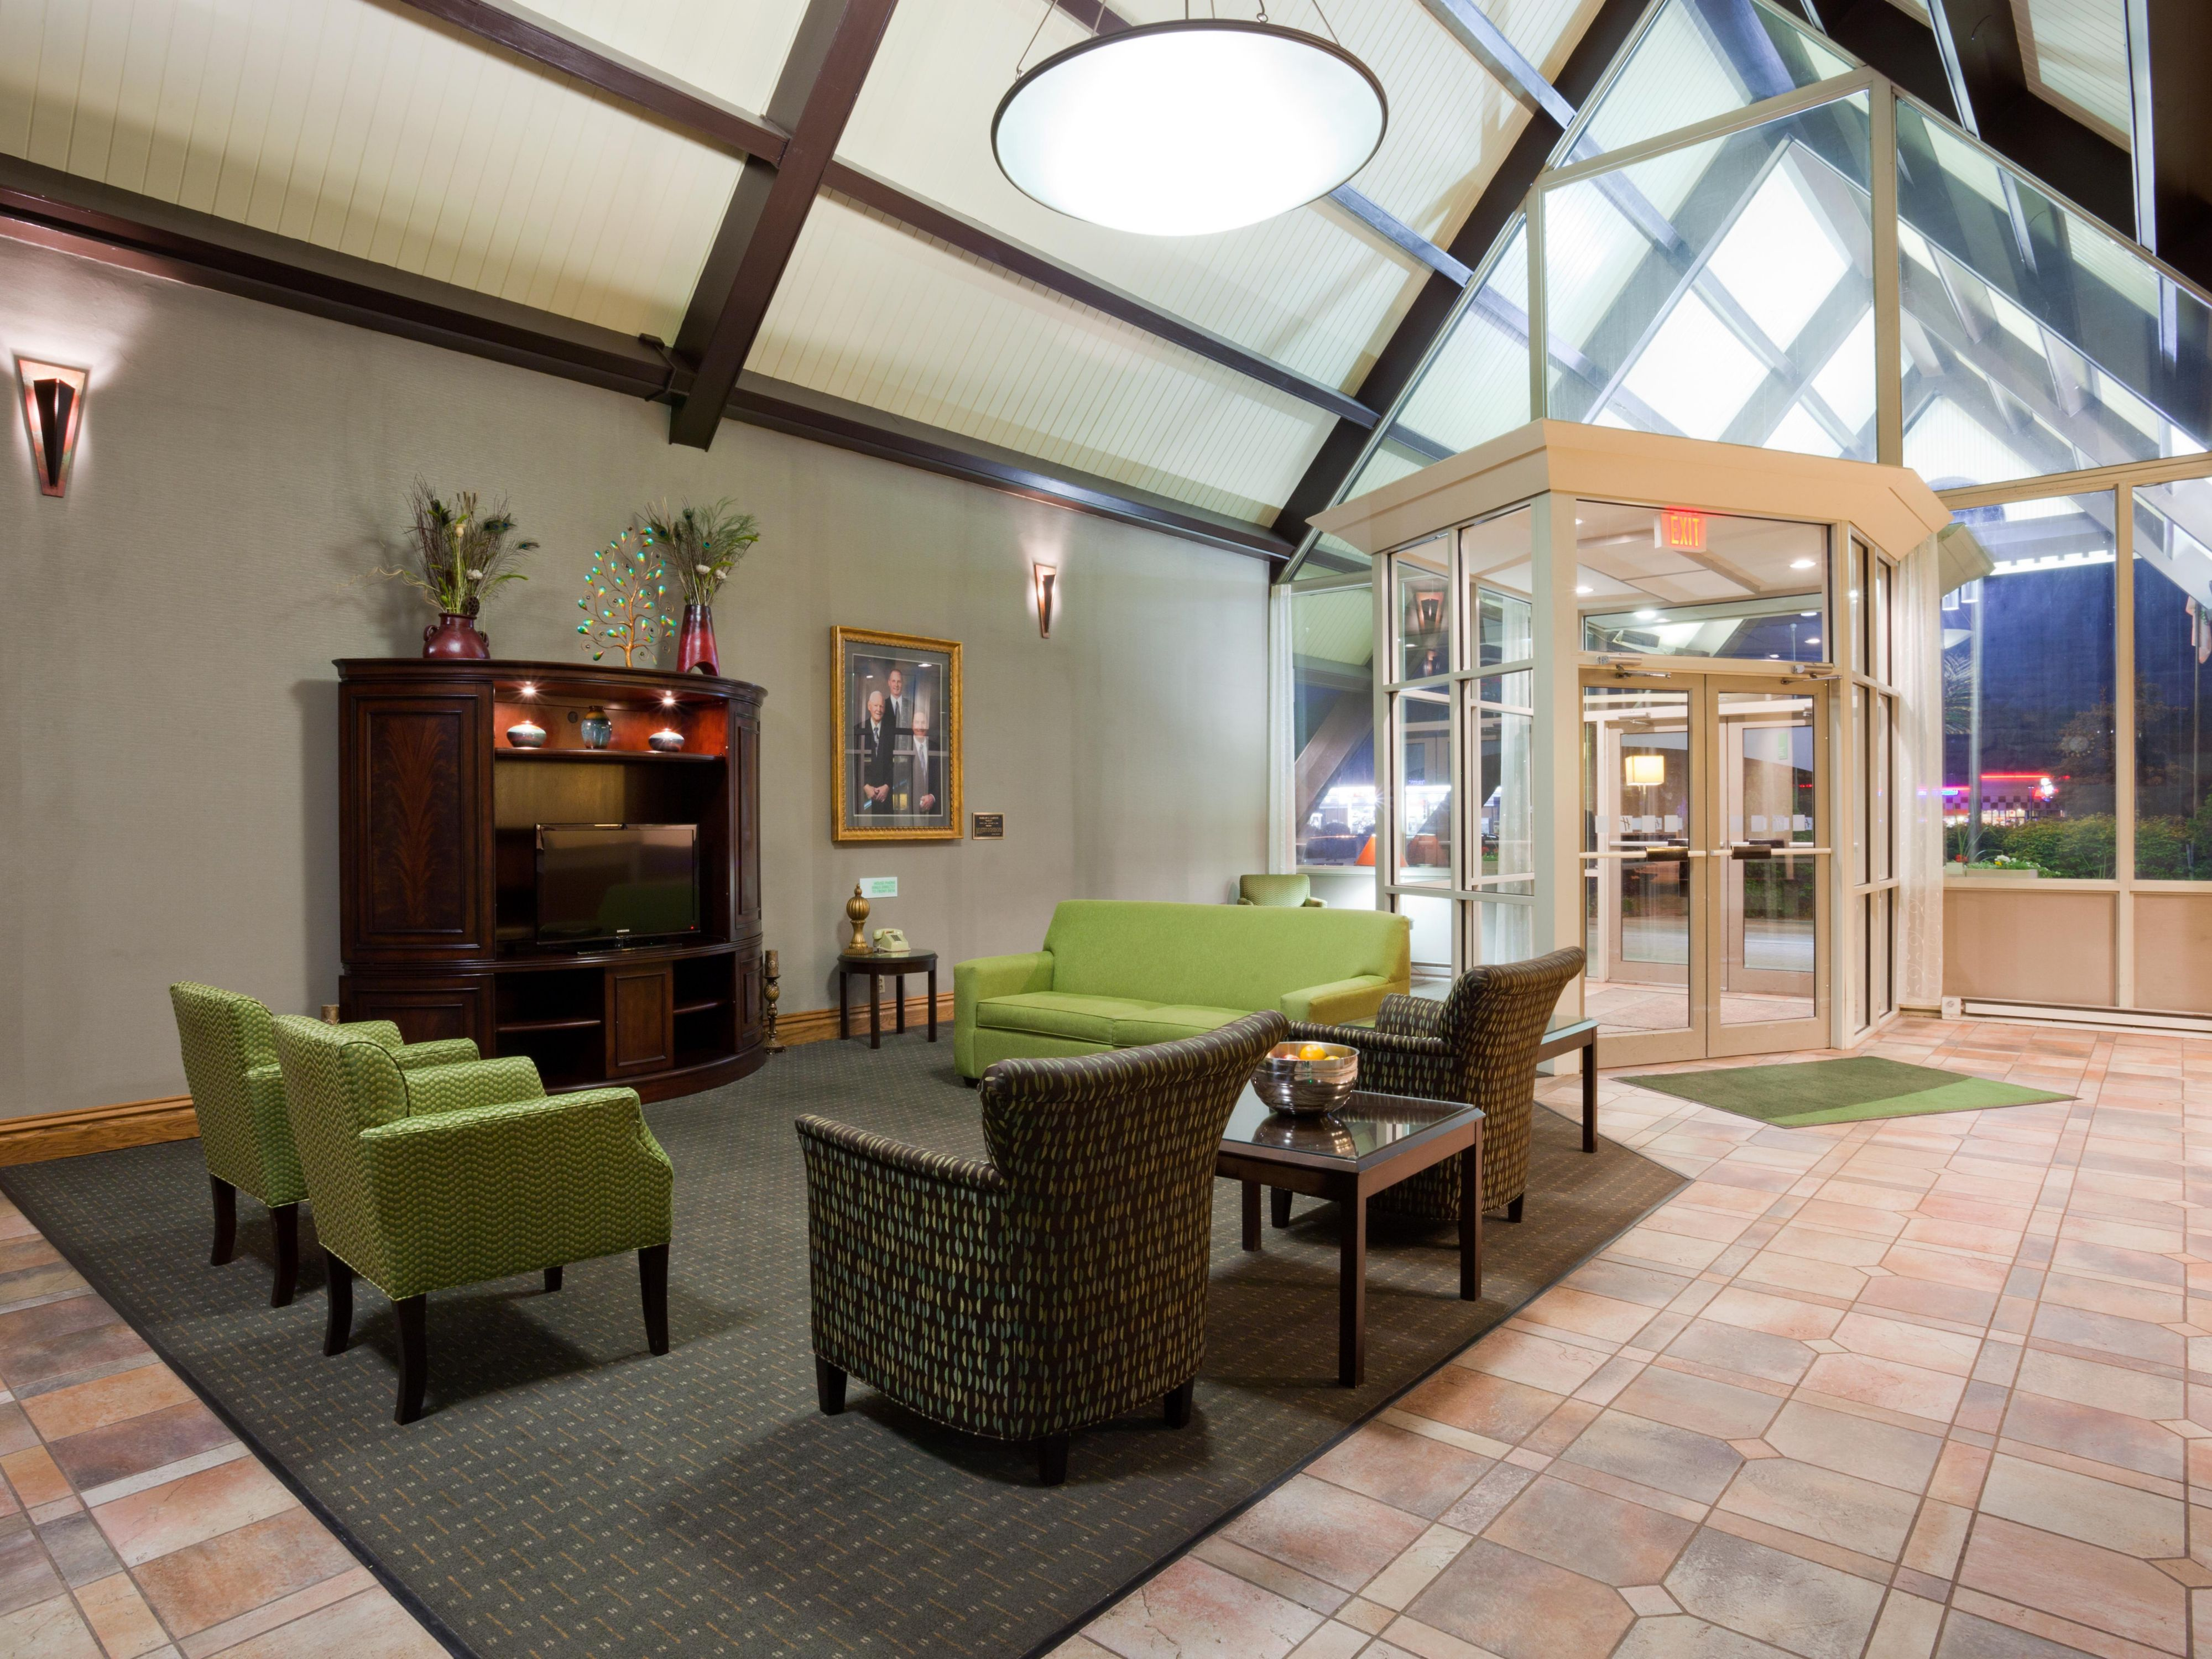 relax in our spacious lobby & warm up by the fireplace when chilly